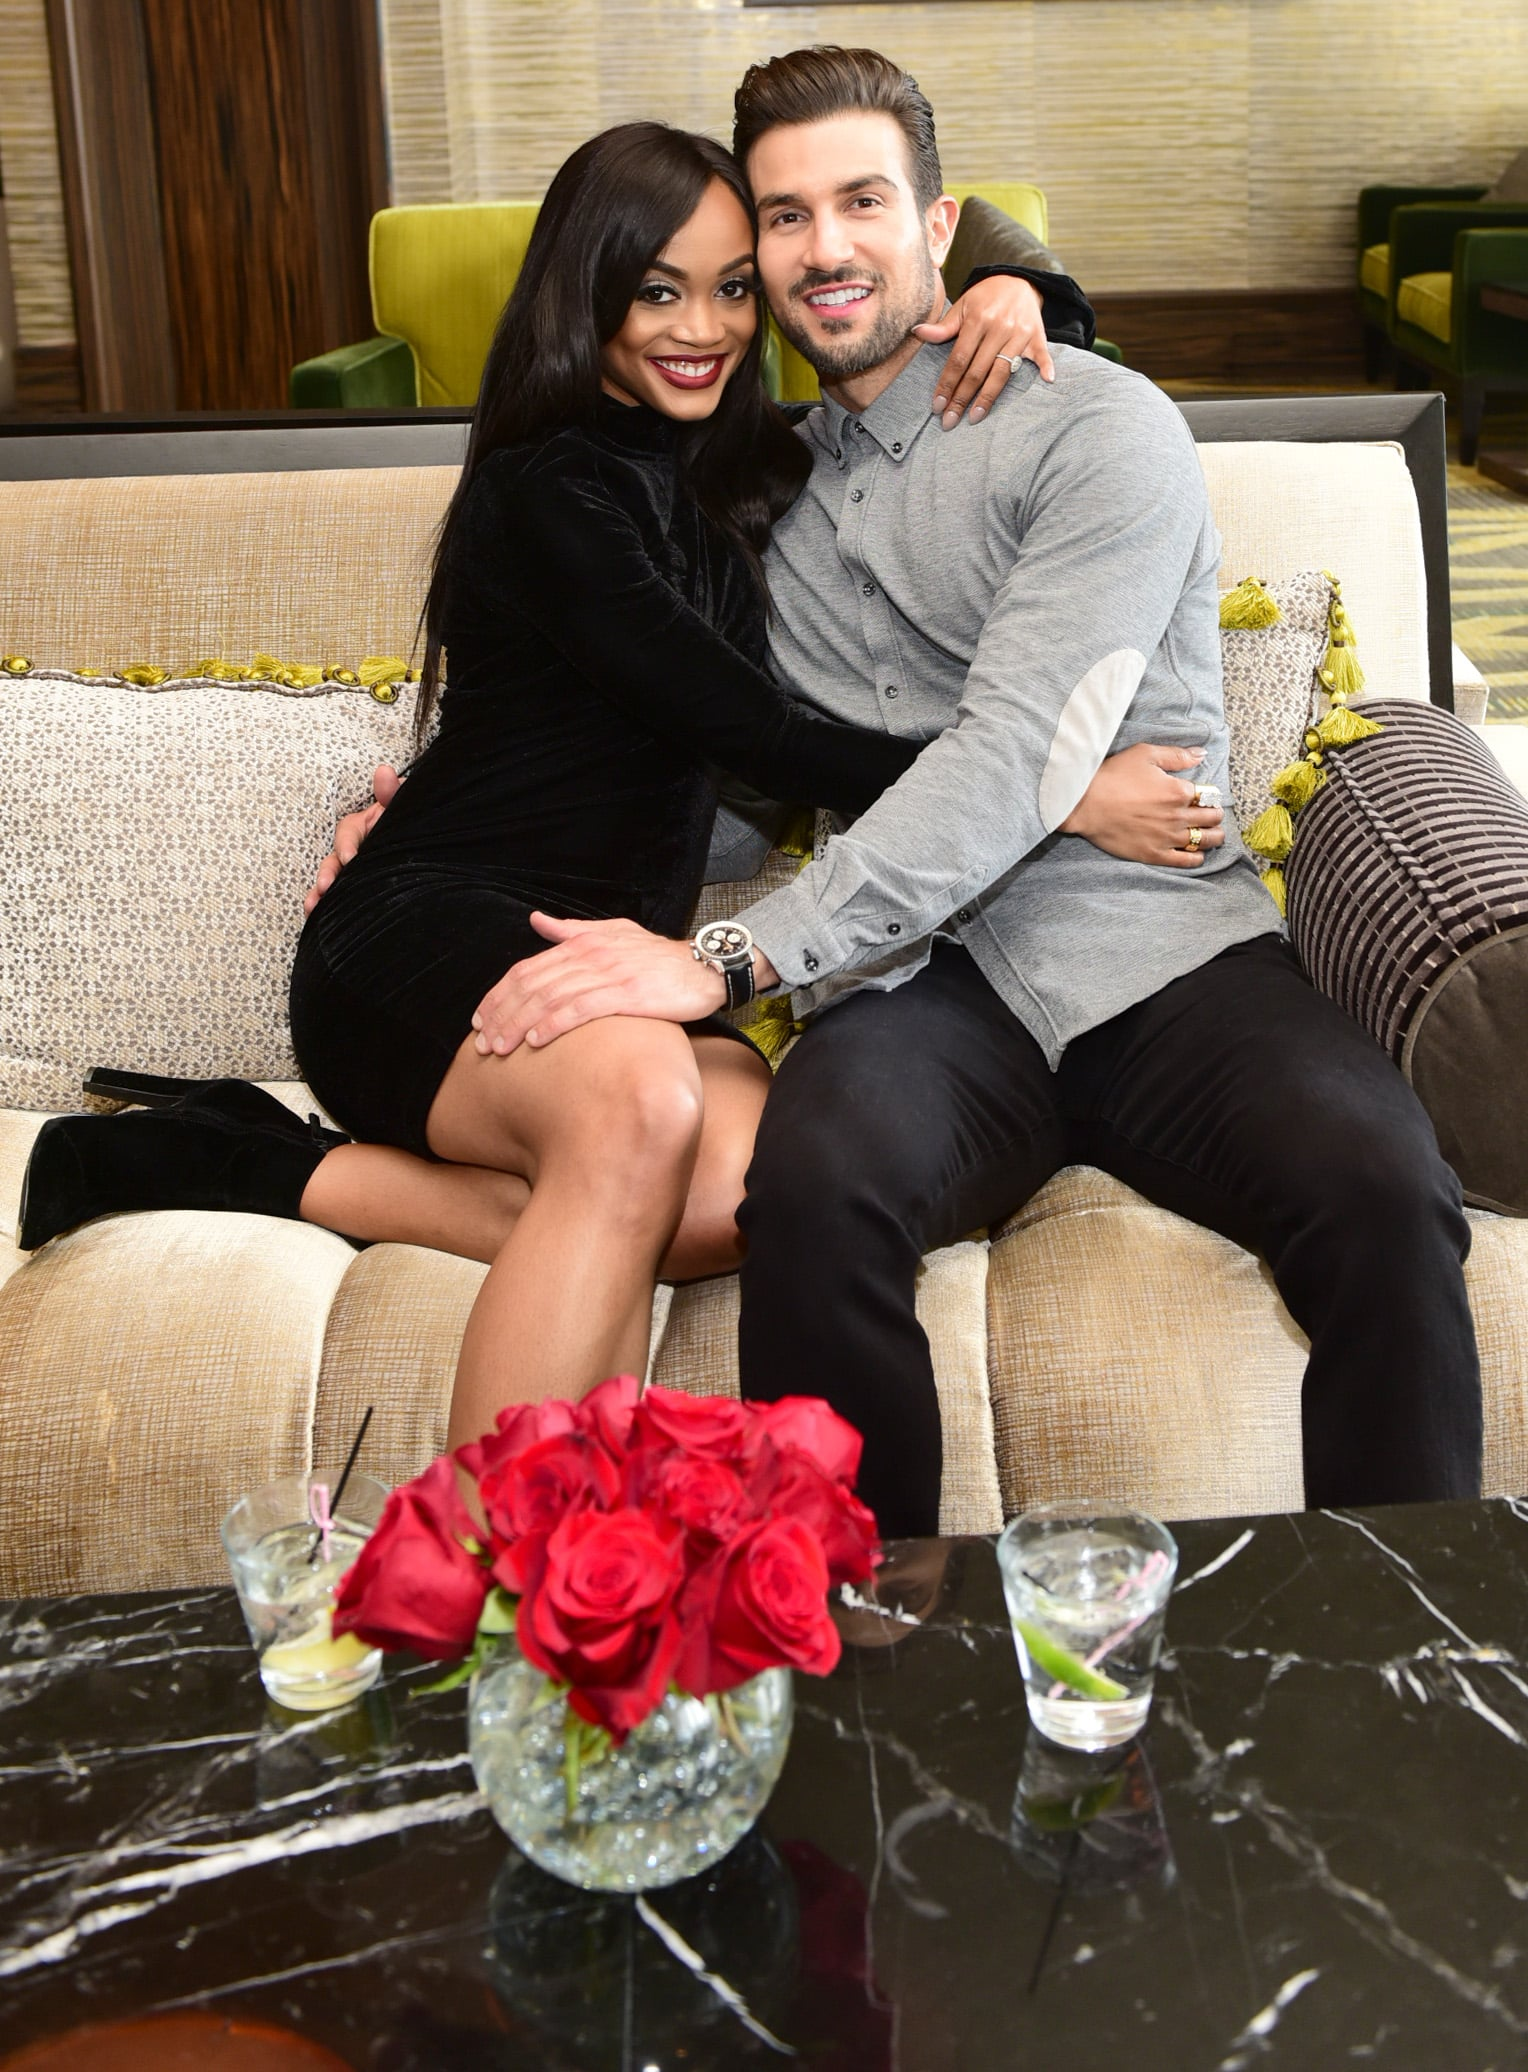 PHILADELPHIA, PA - APRIL 21:  The Bachelorette's Rachel Lindsay celebrates Birthday with fiance Bryan Abasolo at SugarHouse Casino on April 21, 2018 in Philadelphia, Pennsylvania.  (Photo by Lisa Lake/Getty Images for SugarHouse Casino )